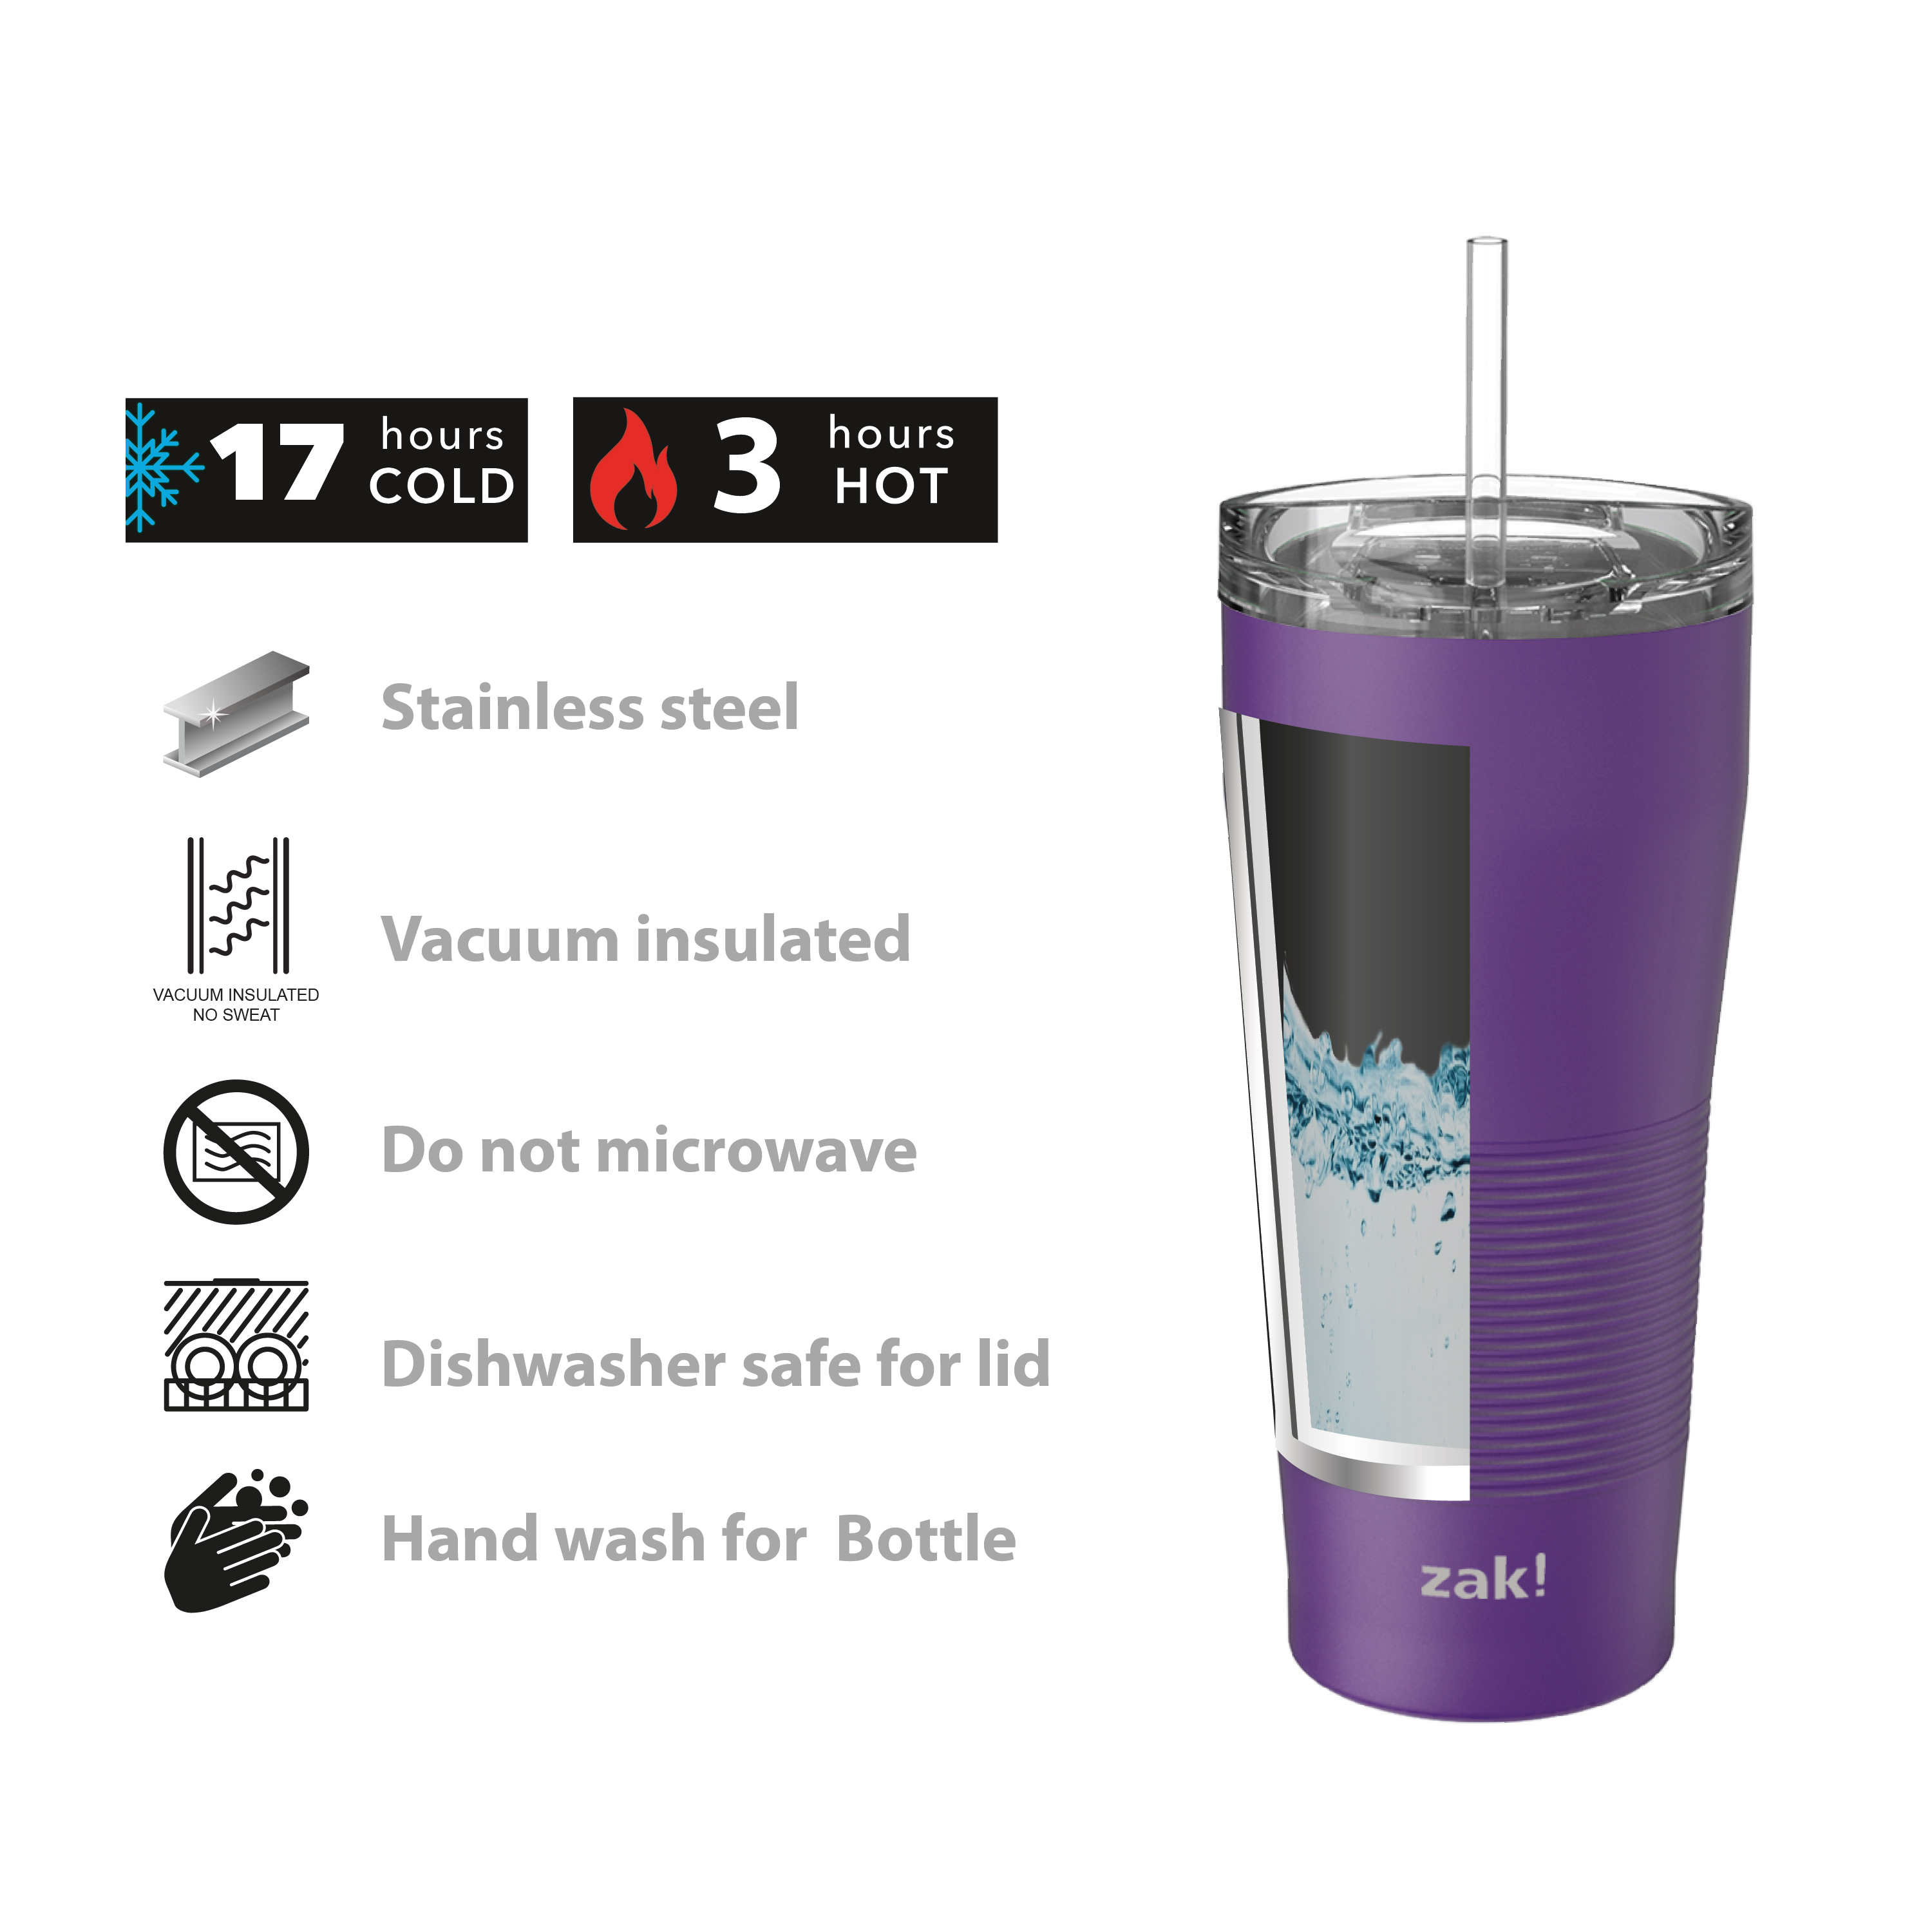 Lynden 28 ounce Stainless Steel Vacuum Insulated Tumbler with Straw, Viola slideshow image 4